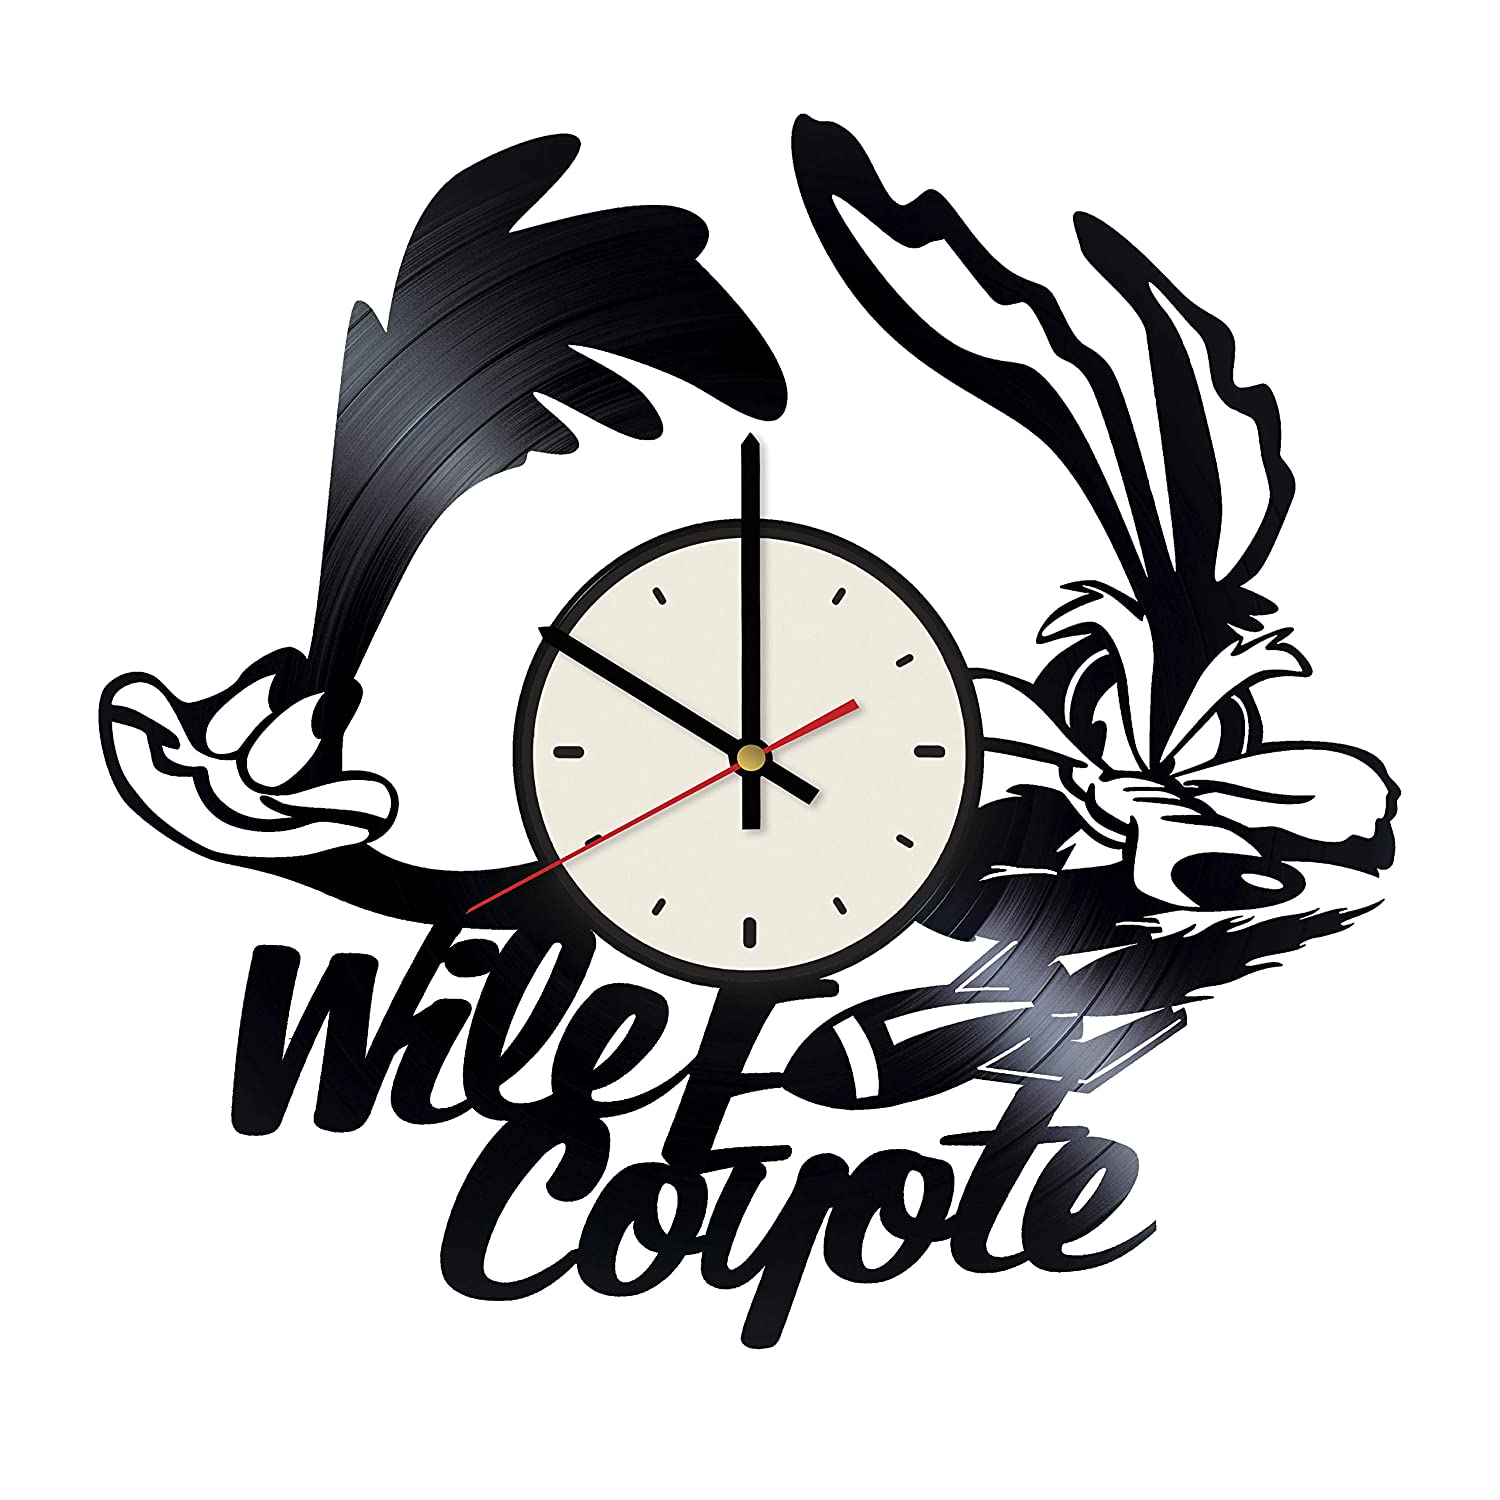 Coyote and Road Runner Vinyl Clock Gift for Vintage Wall Decor Wall Art Living Room Artwork